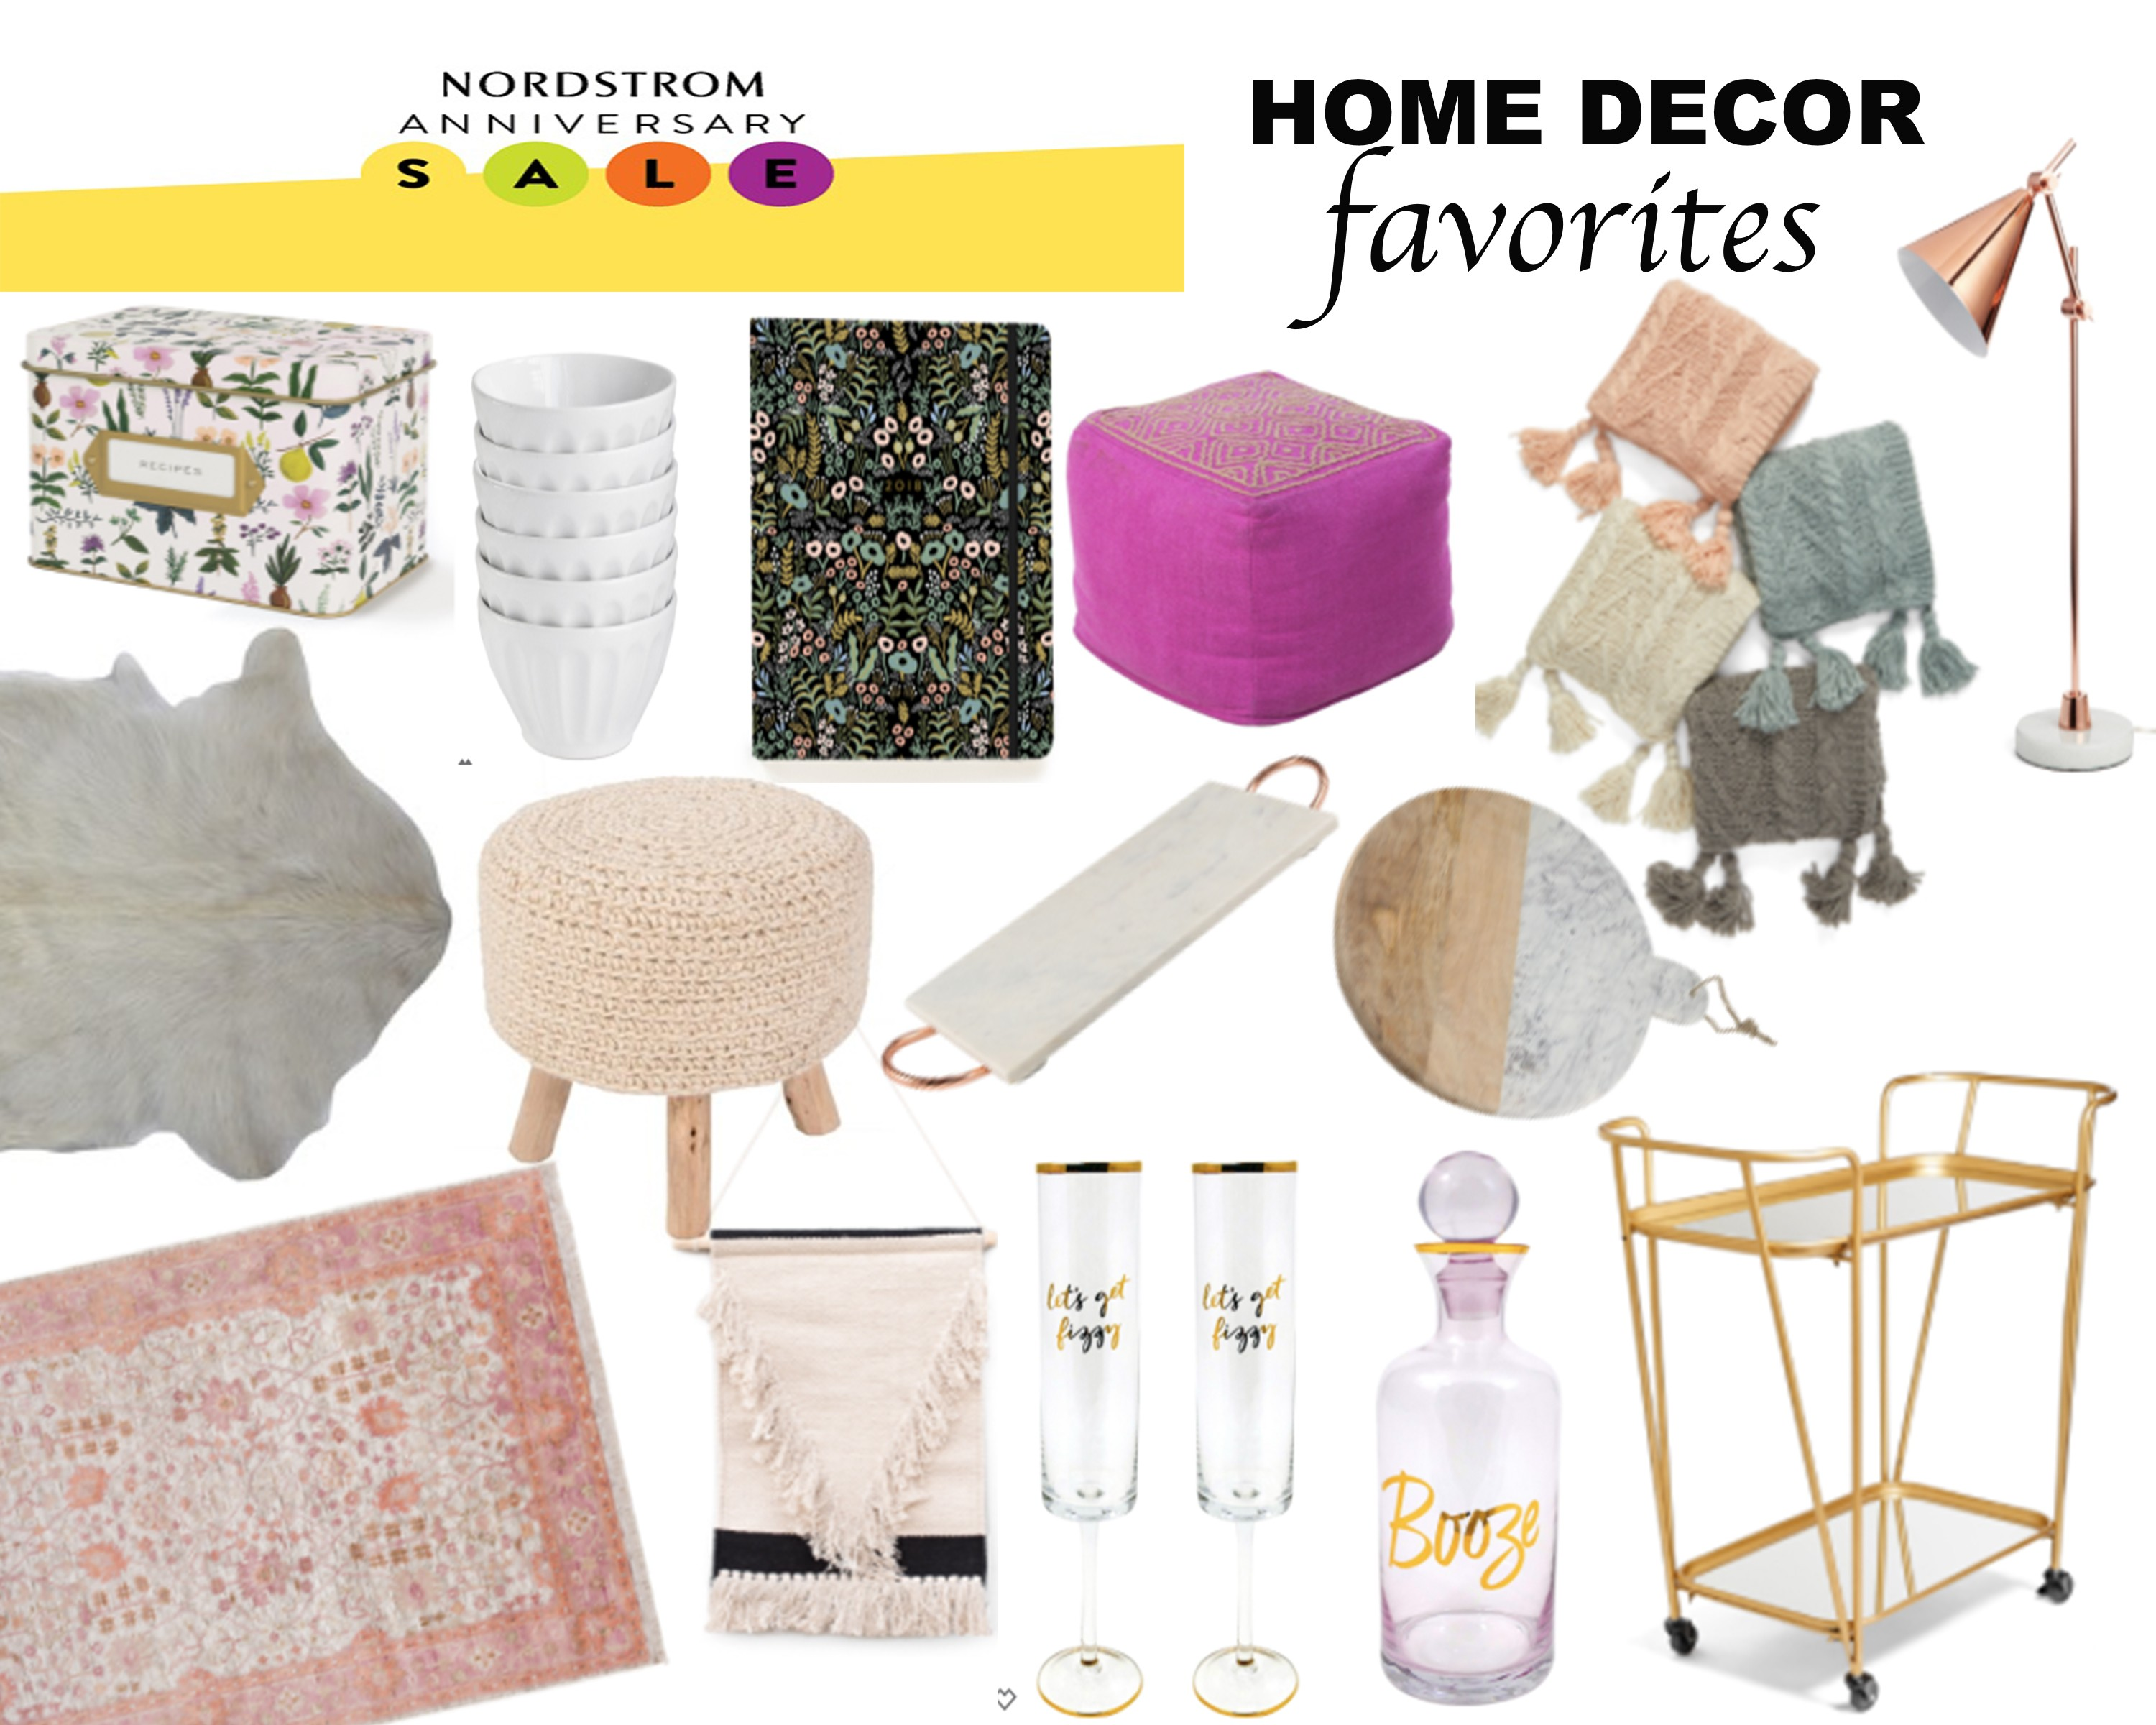 Nordstrom Anniversary Home Decor Favorites: nordstrom home decor sale